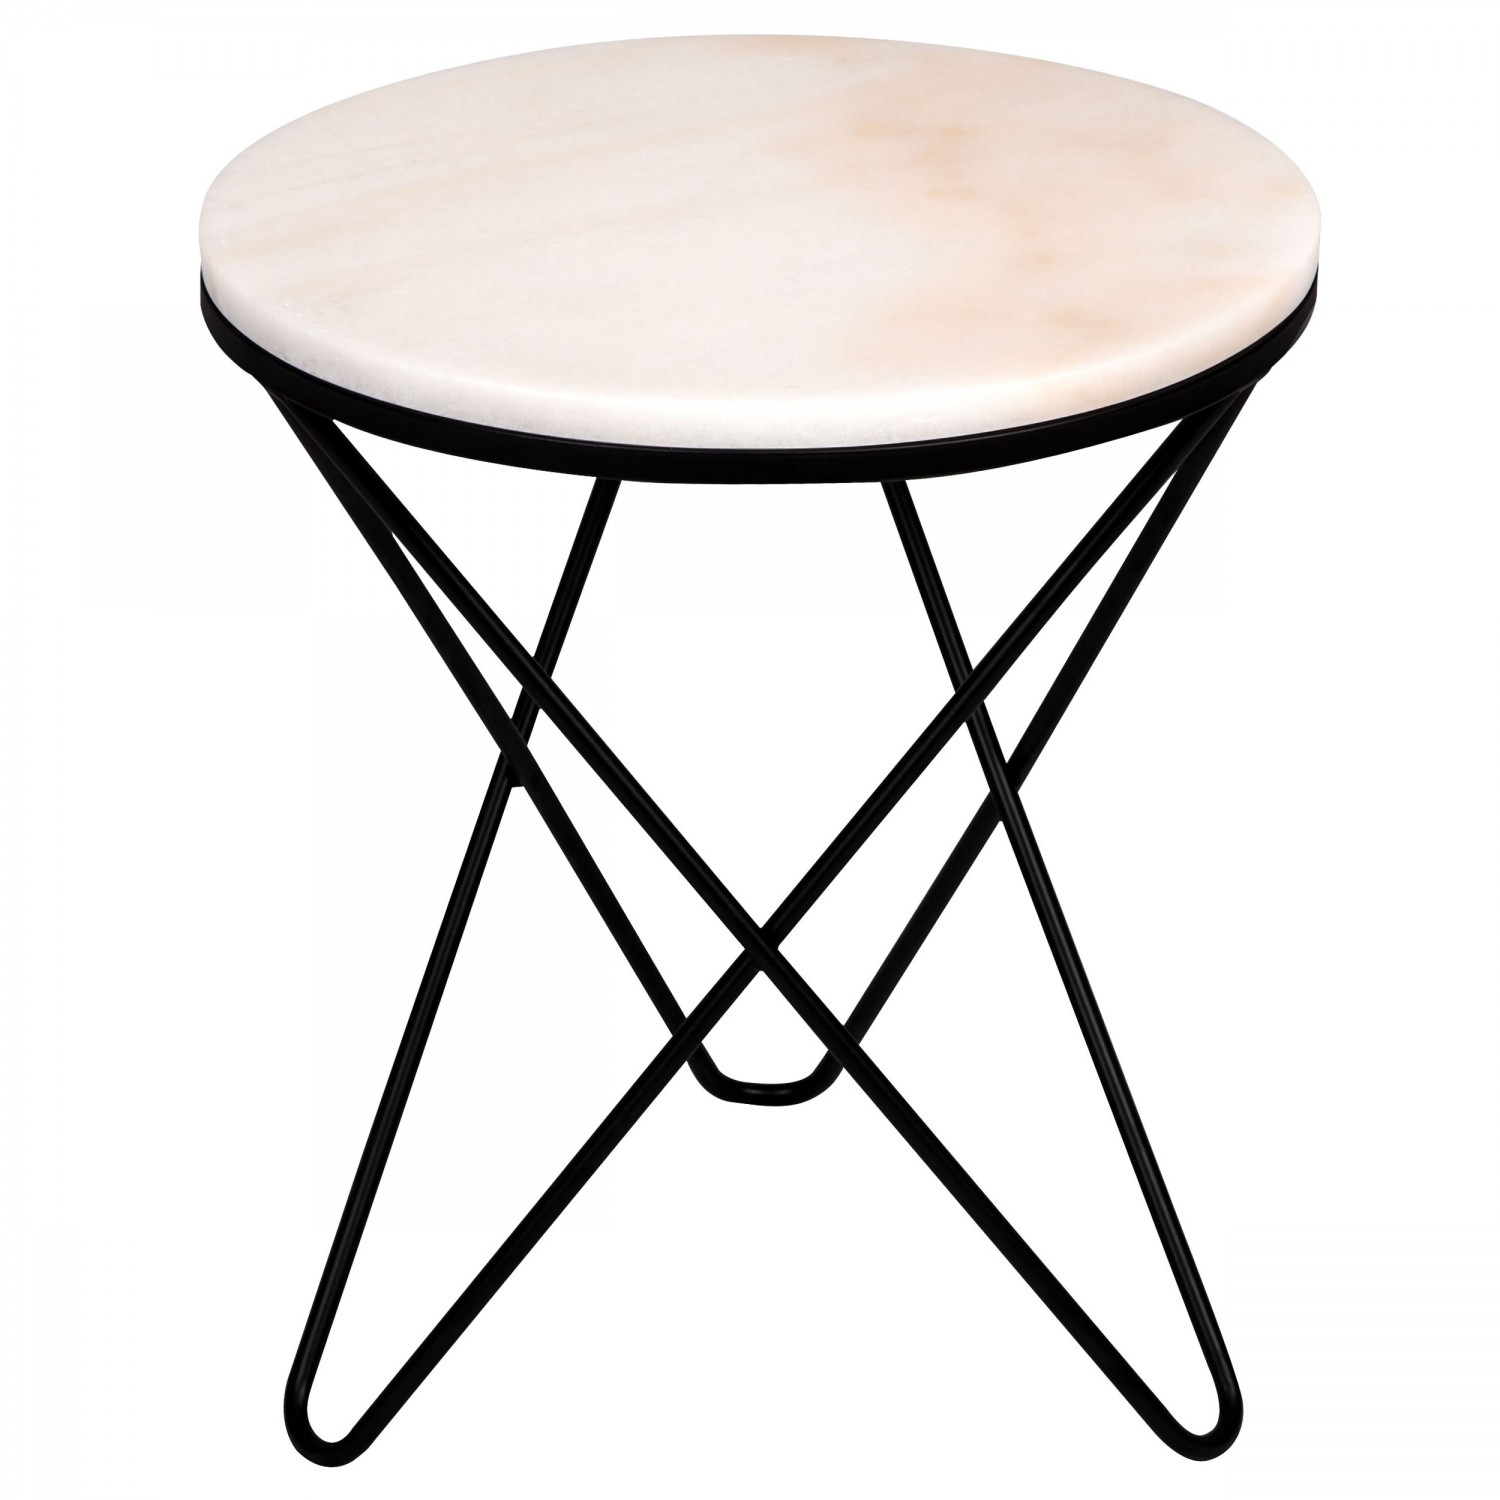 Table D Appoint Blanche Table D 39appoint Ronde Abe Marbre Blanche Koya Design